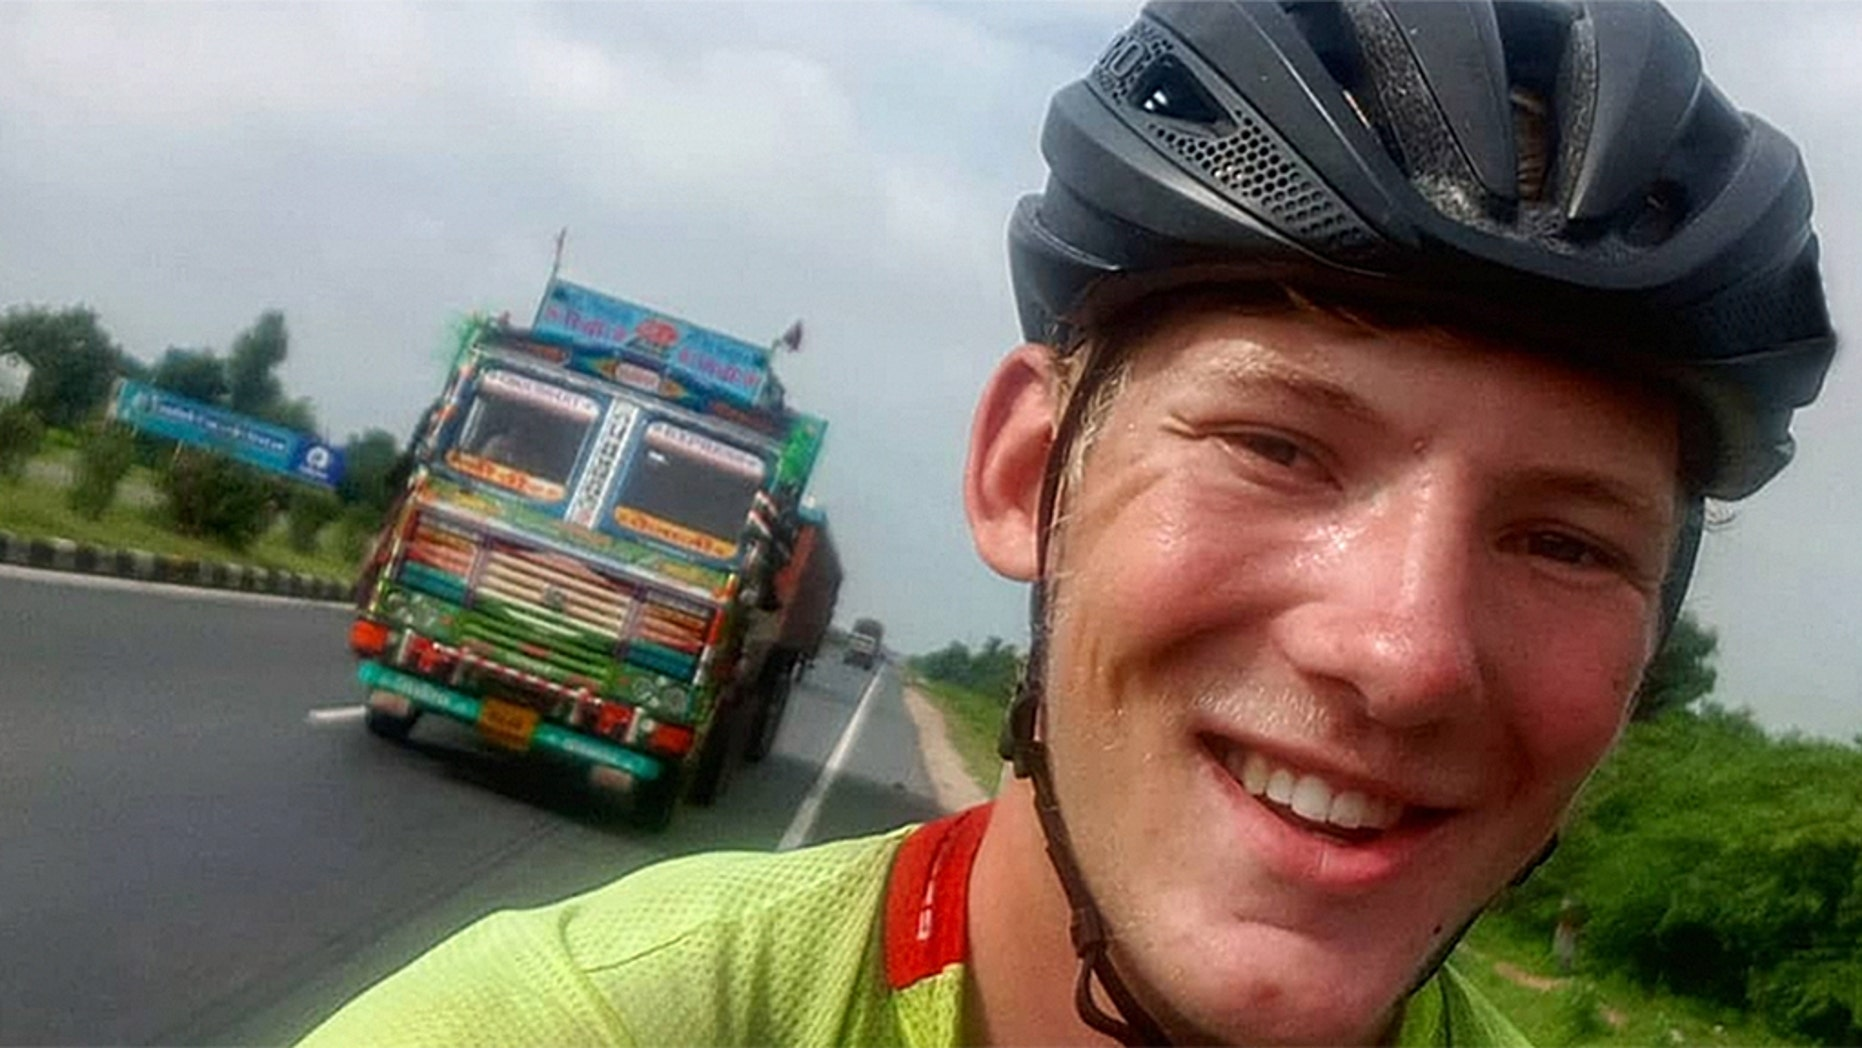 A British teenager said his bike was stolen in Australia as he attempted to cycle around the globe.